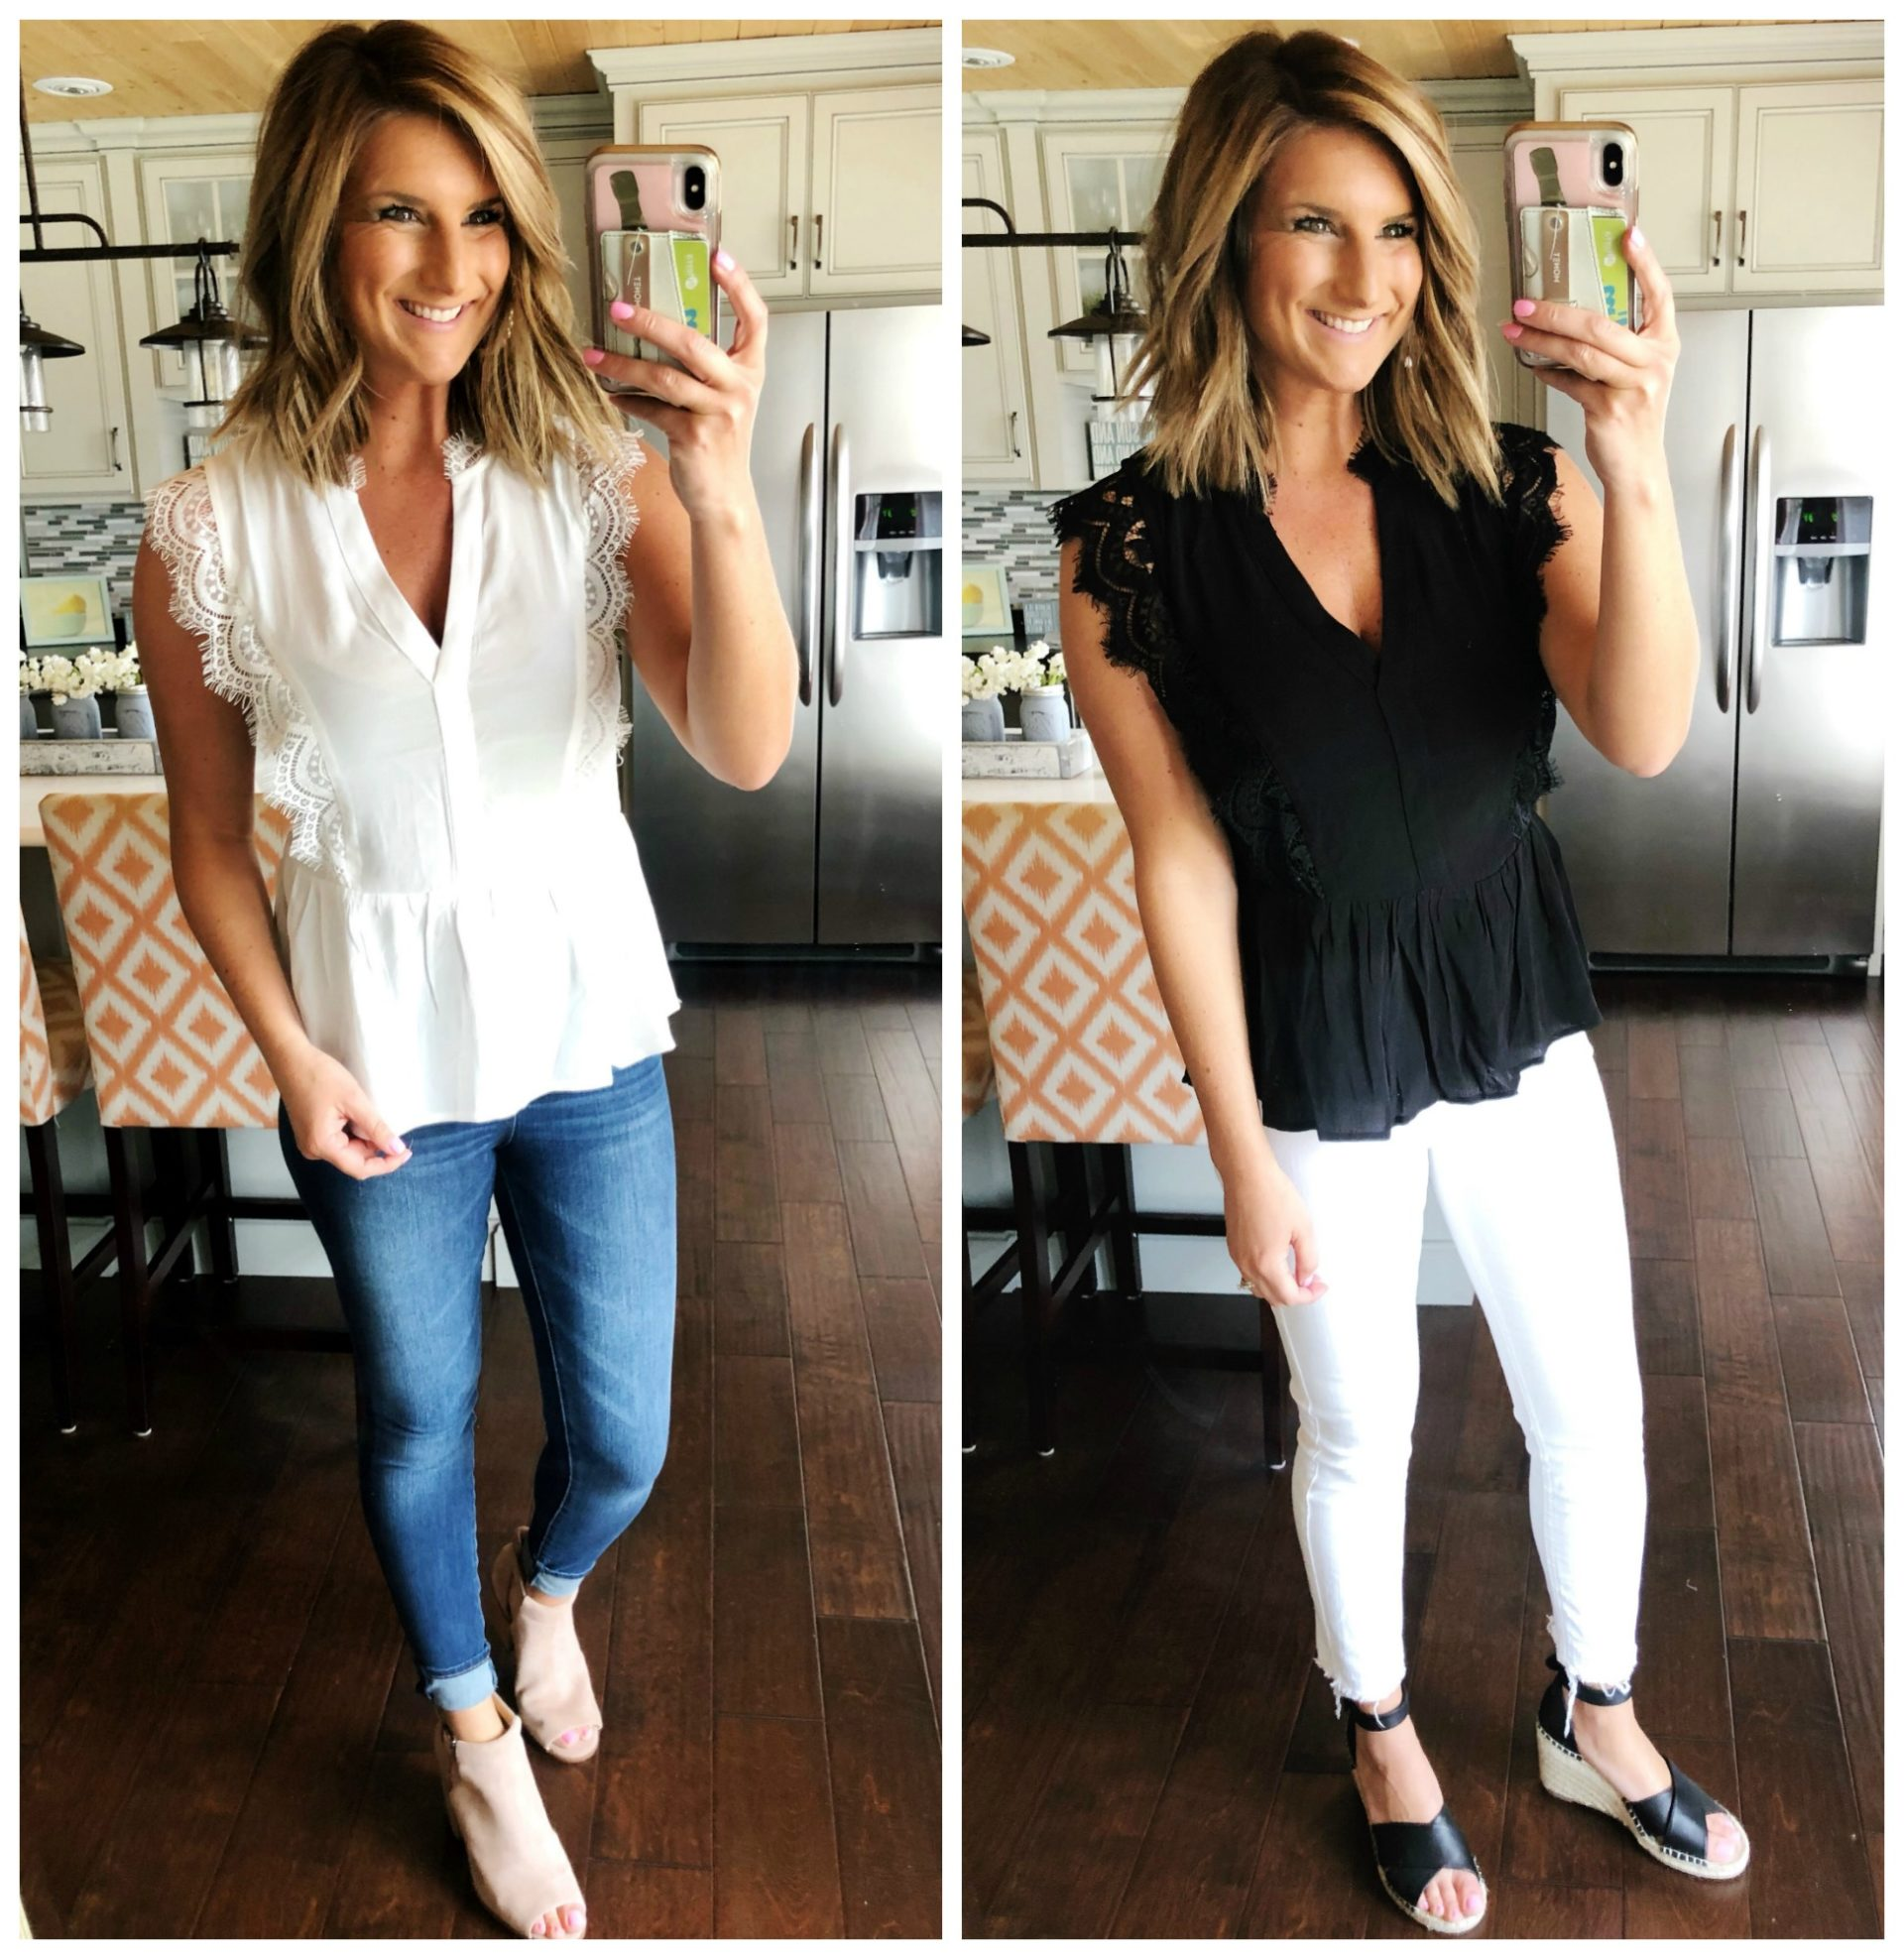 Feminine Lace Top // The Best White Jeans for Spring // The Best Jeans for your Body